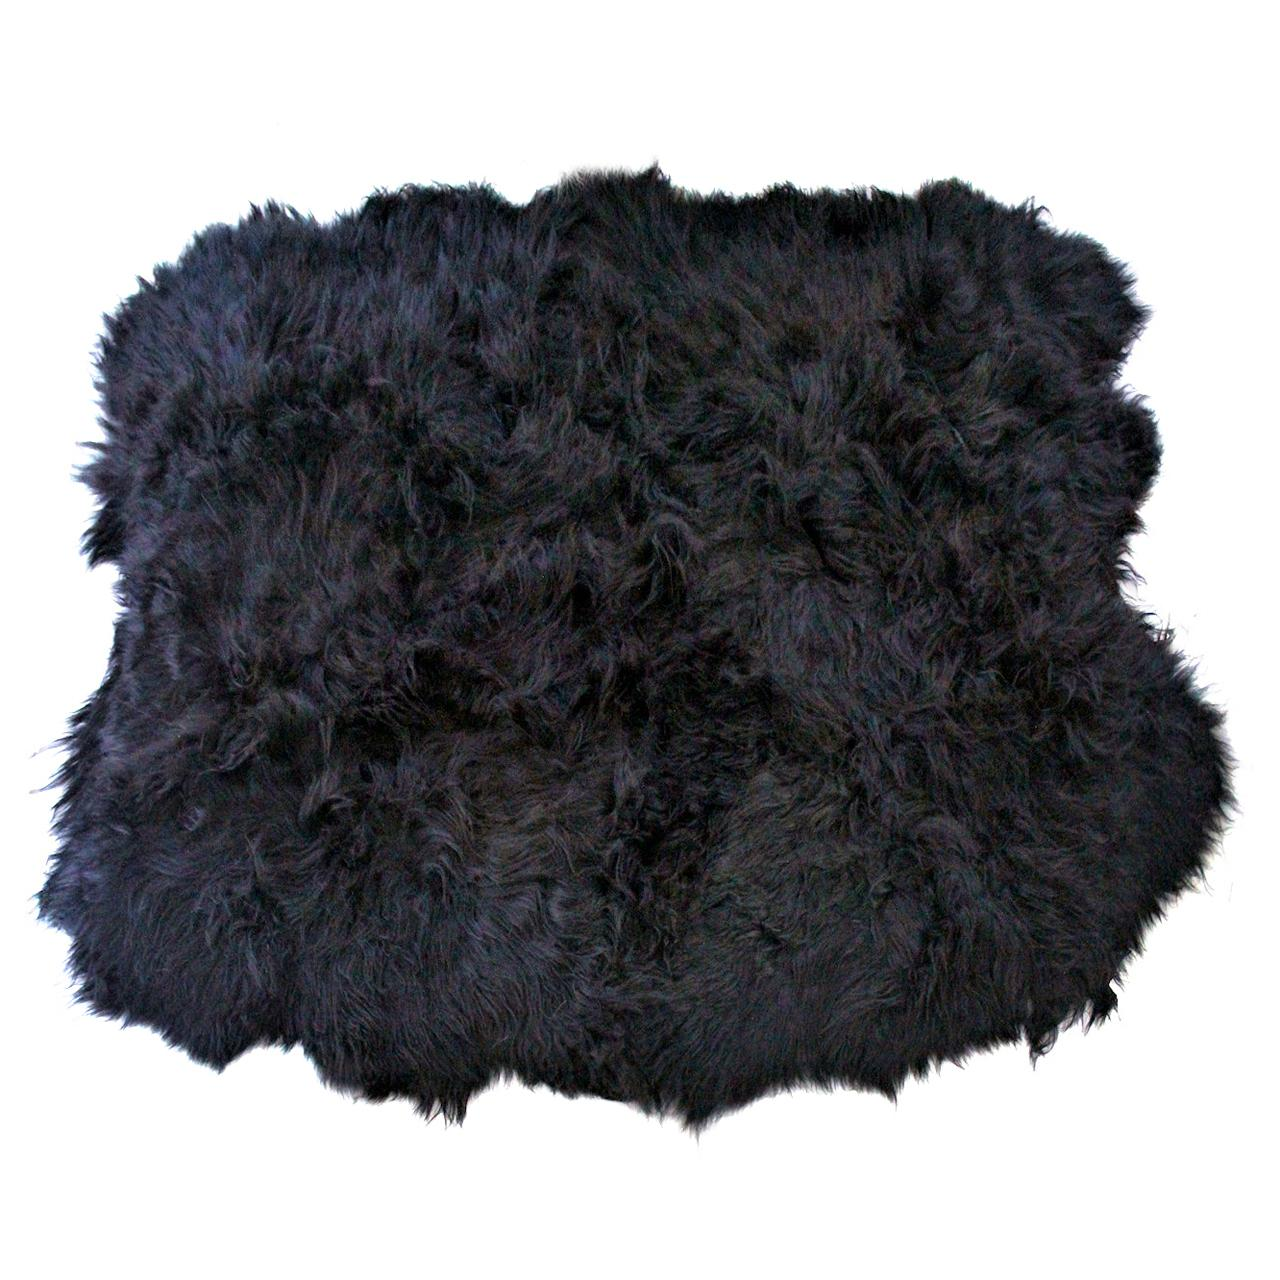 Black Sheepskin Rug, Black Icelandic Shaggy Long Wool